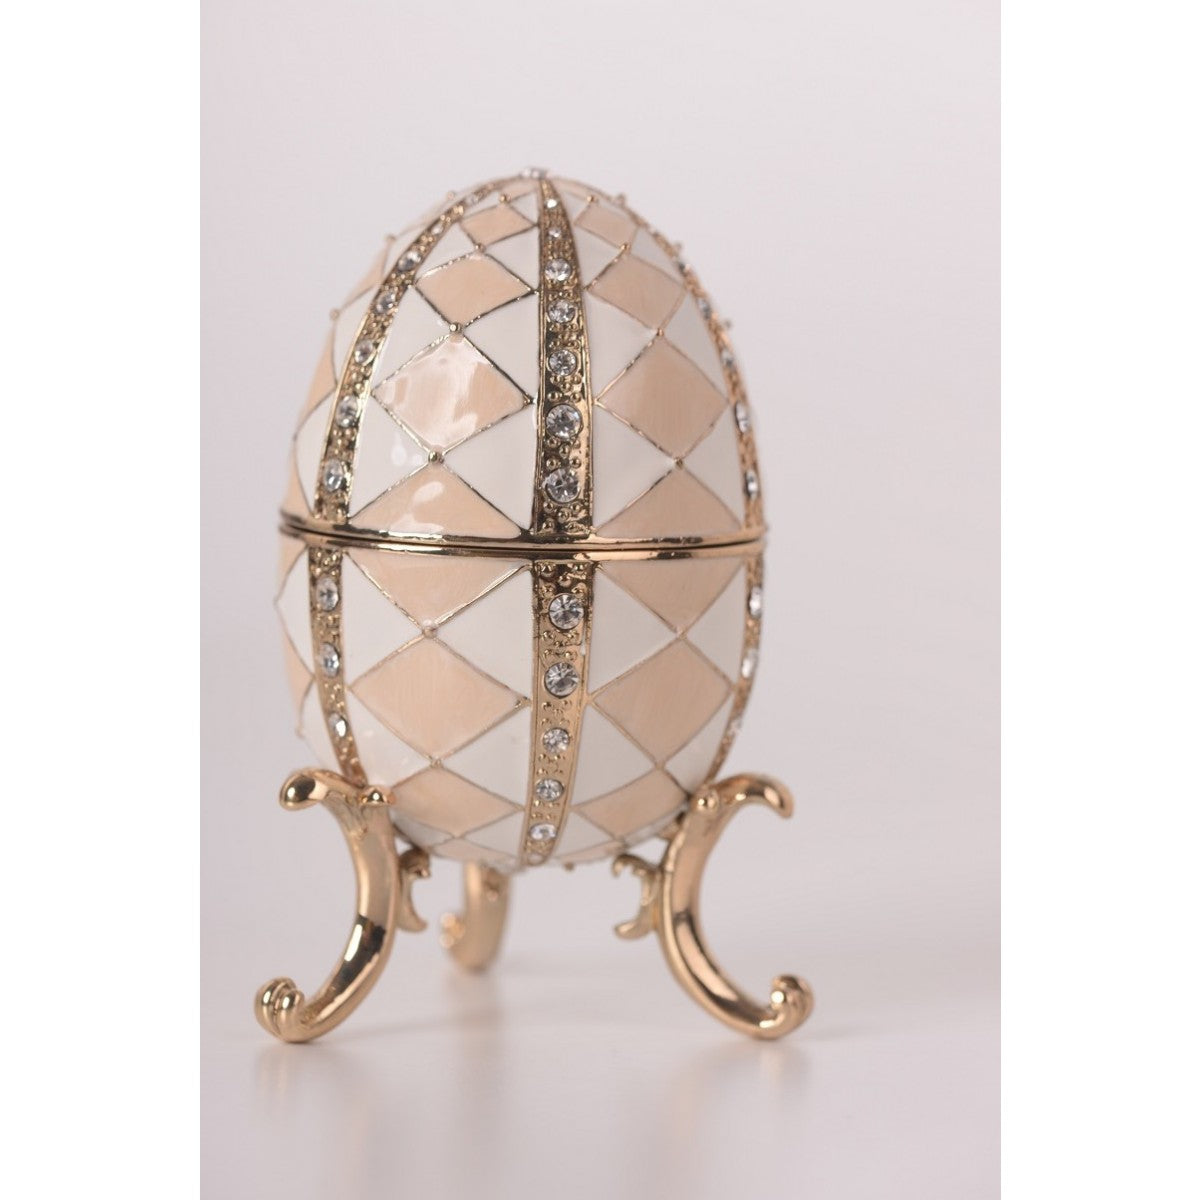 White & Pink Music Playing Faberge Egg by Keren Kopal